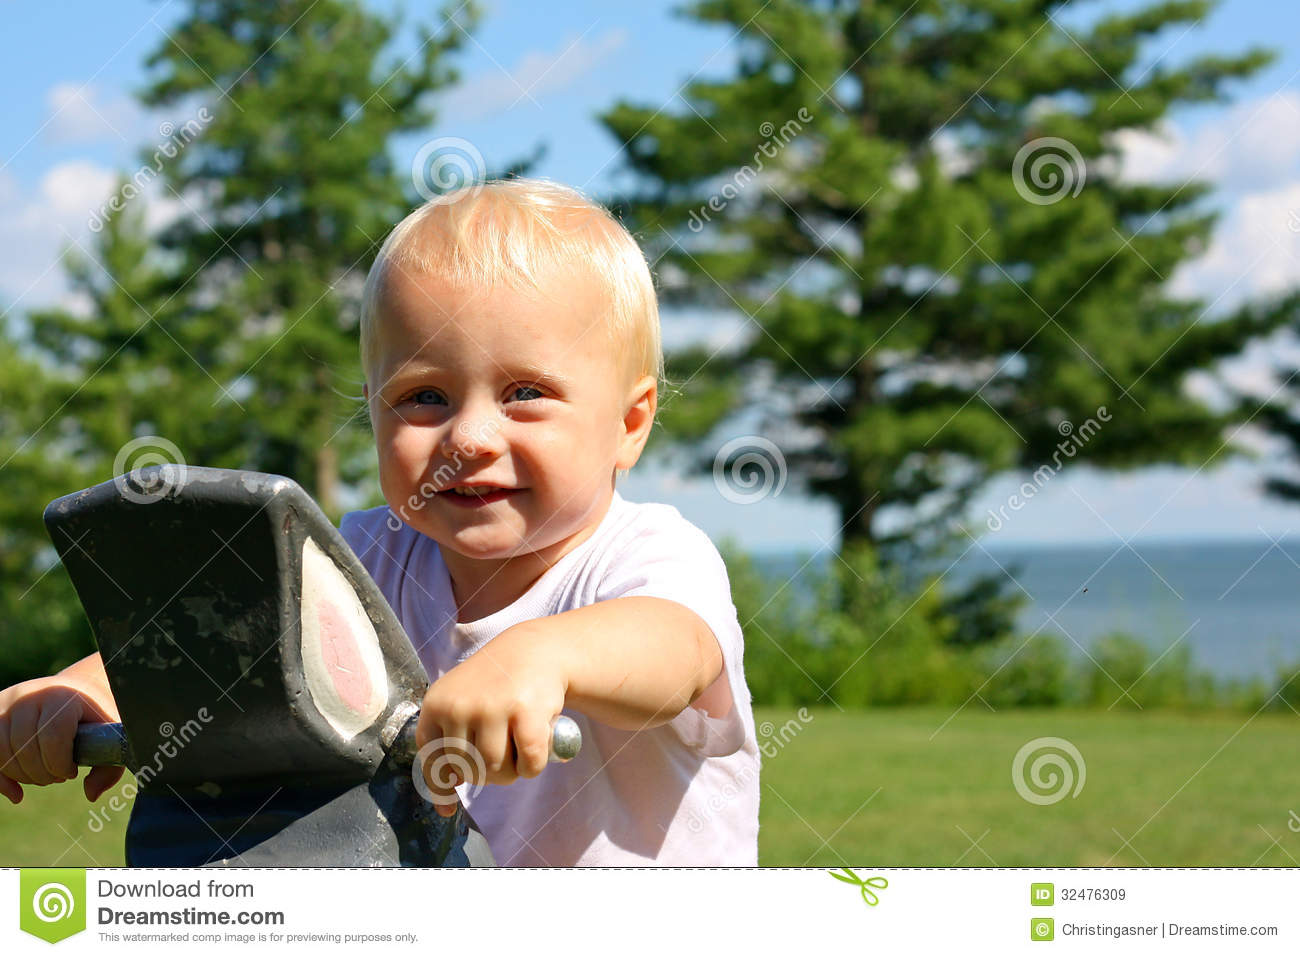 Lake Toys For Boys : Cute baby at park by lake royalty free stock images